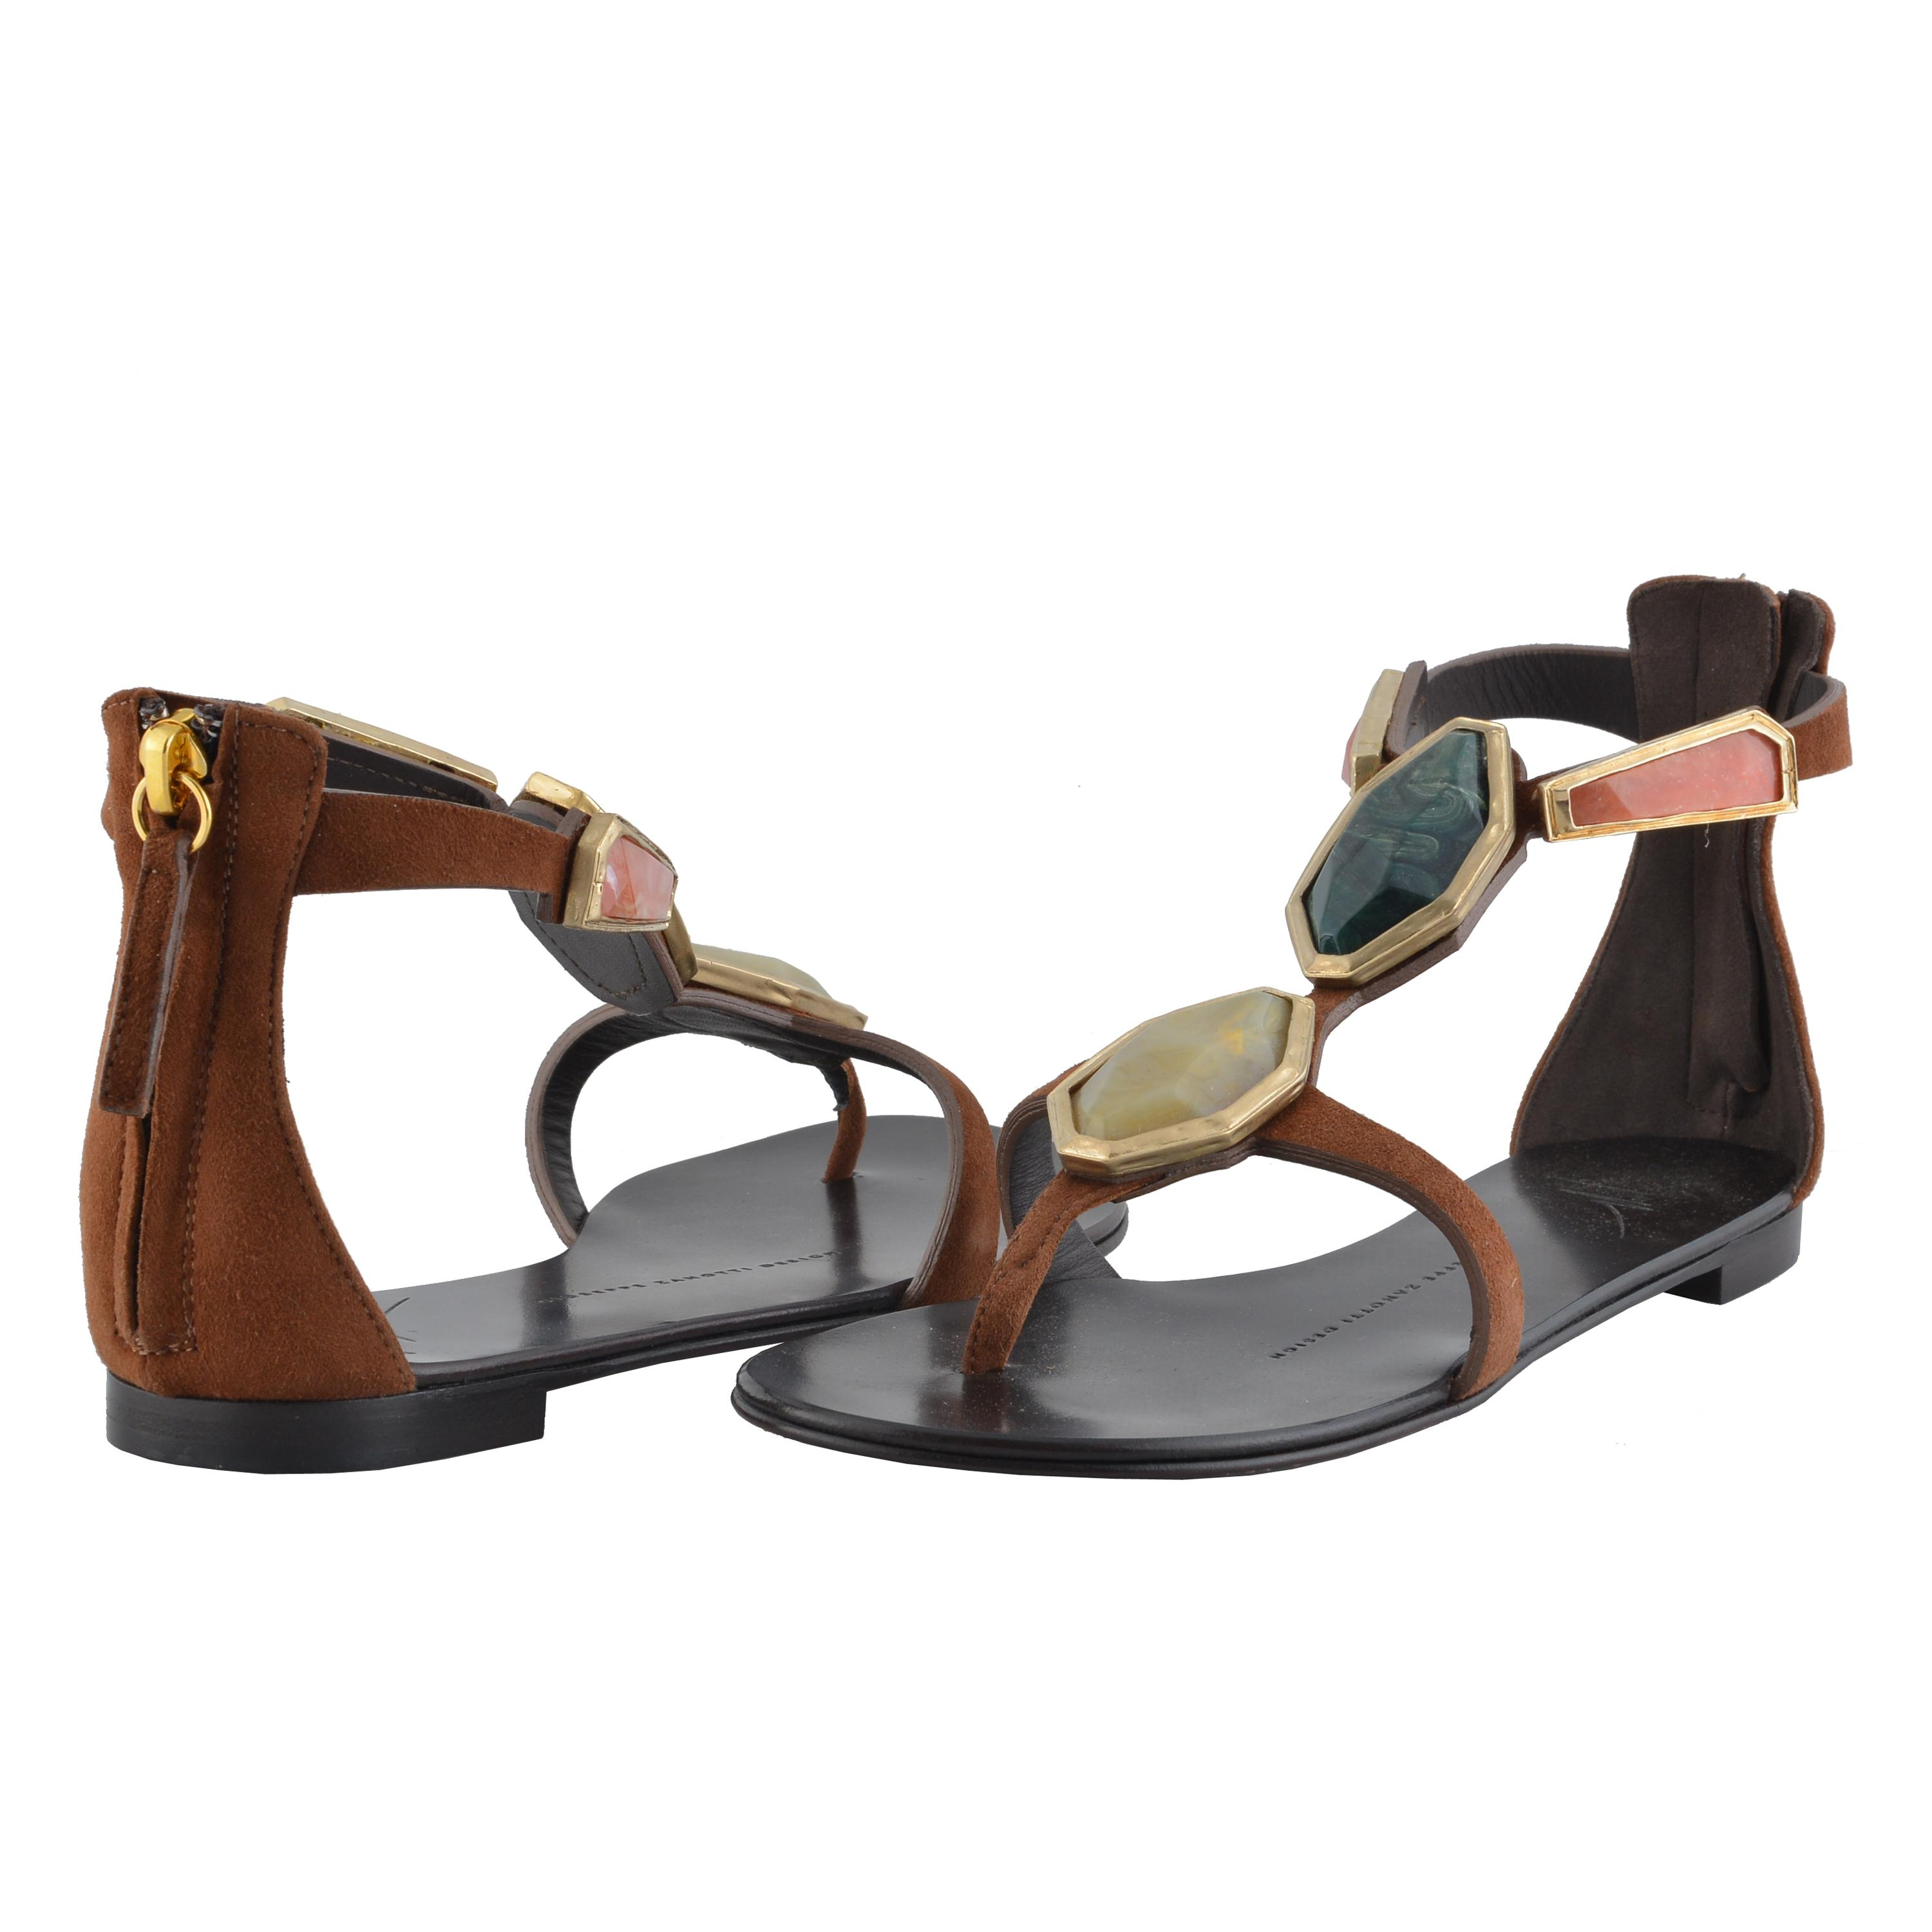 30f1f2770596 ... Giuseppe Zanotti Brown Design Women s Suede Leather Leather Leather  Stone Decorated Flat Sandals Size US 5